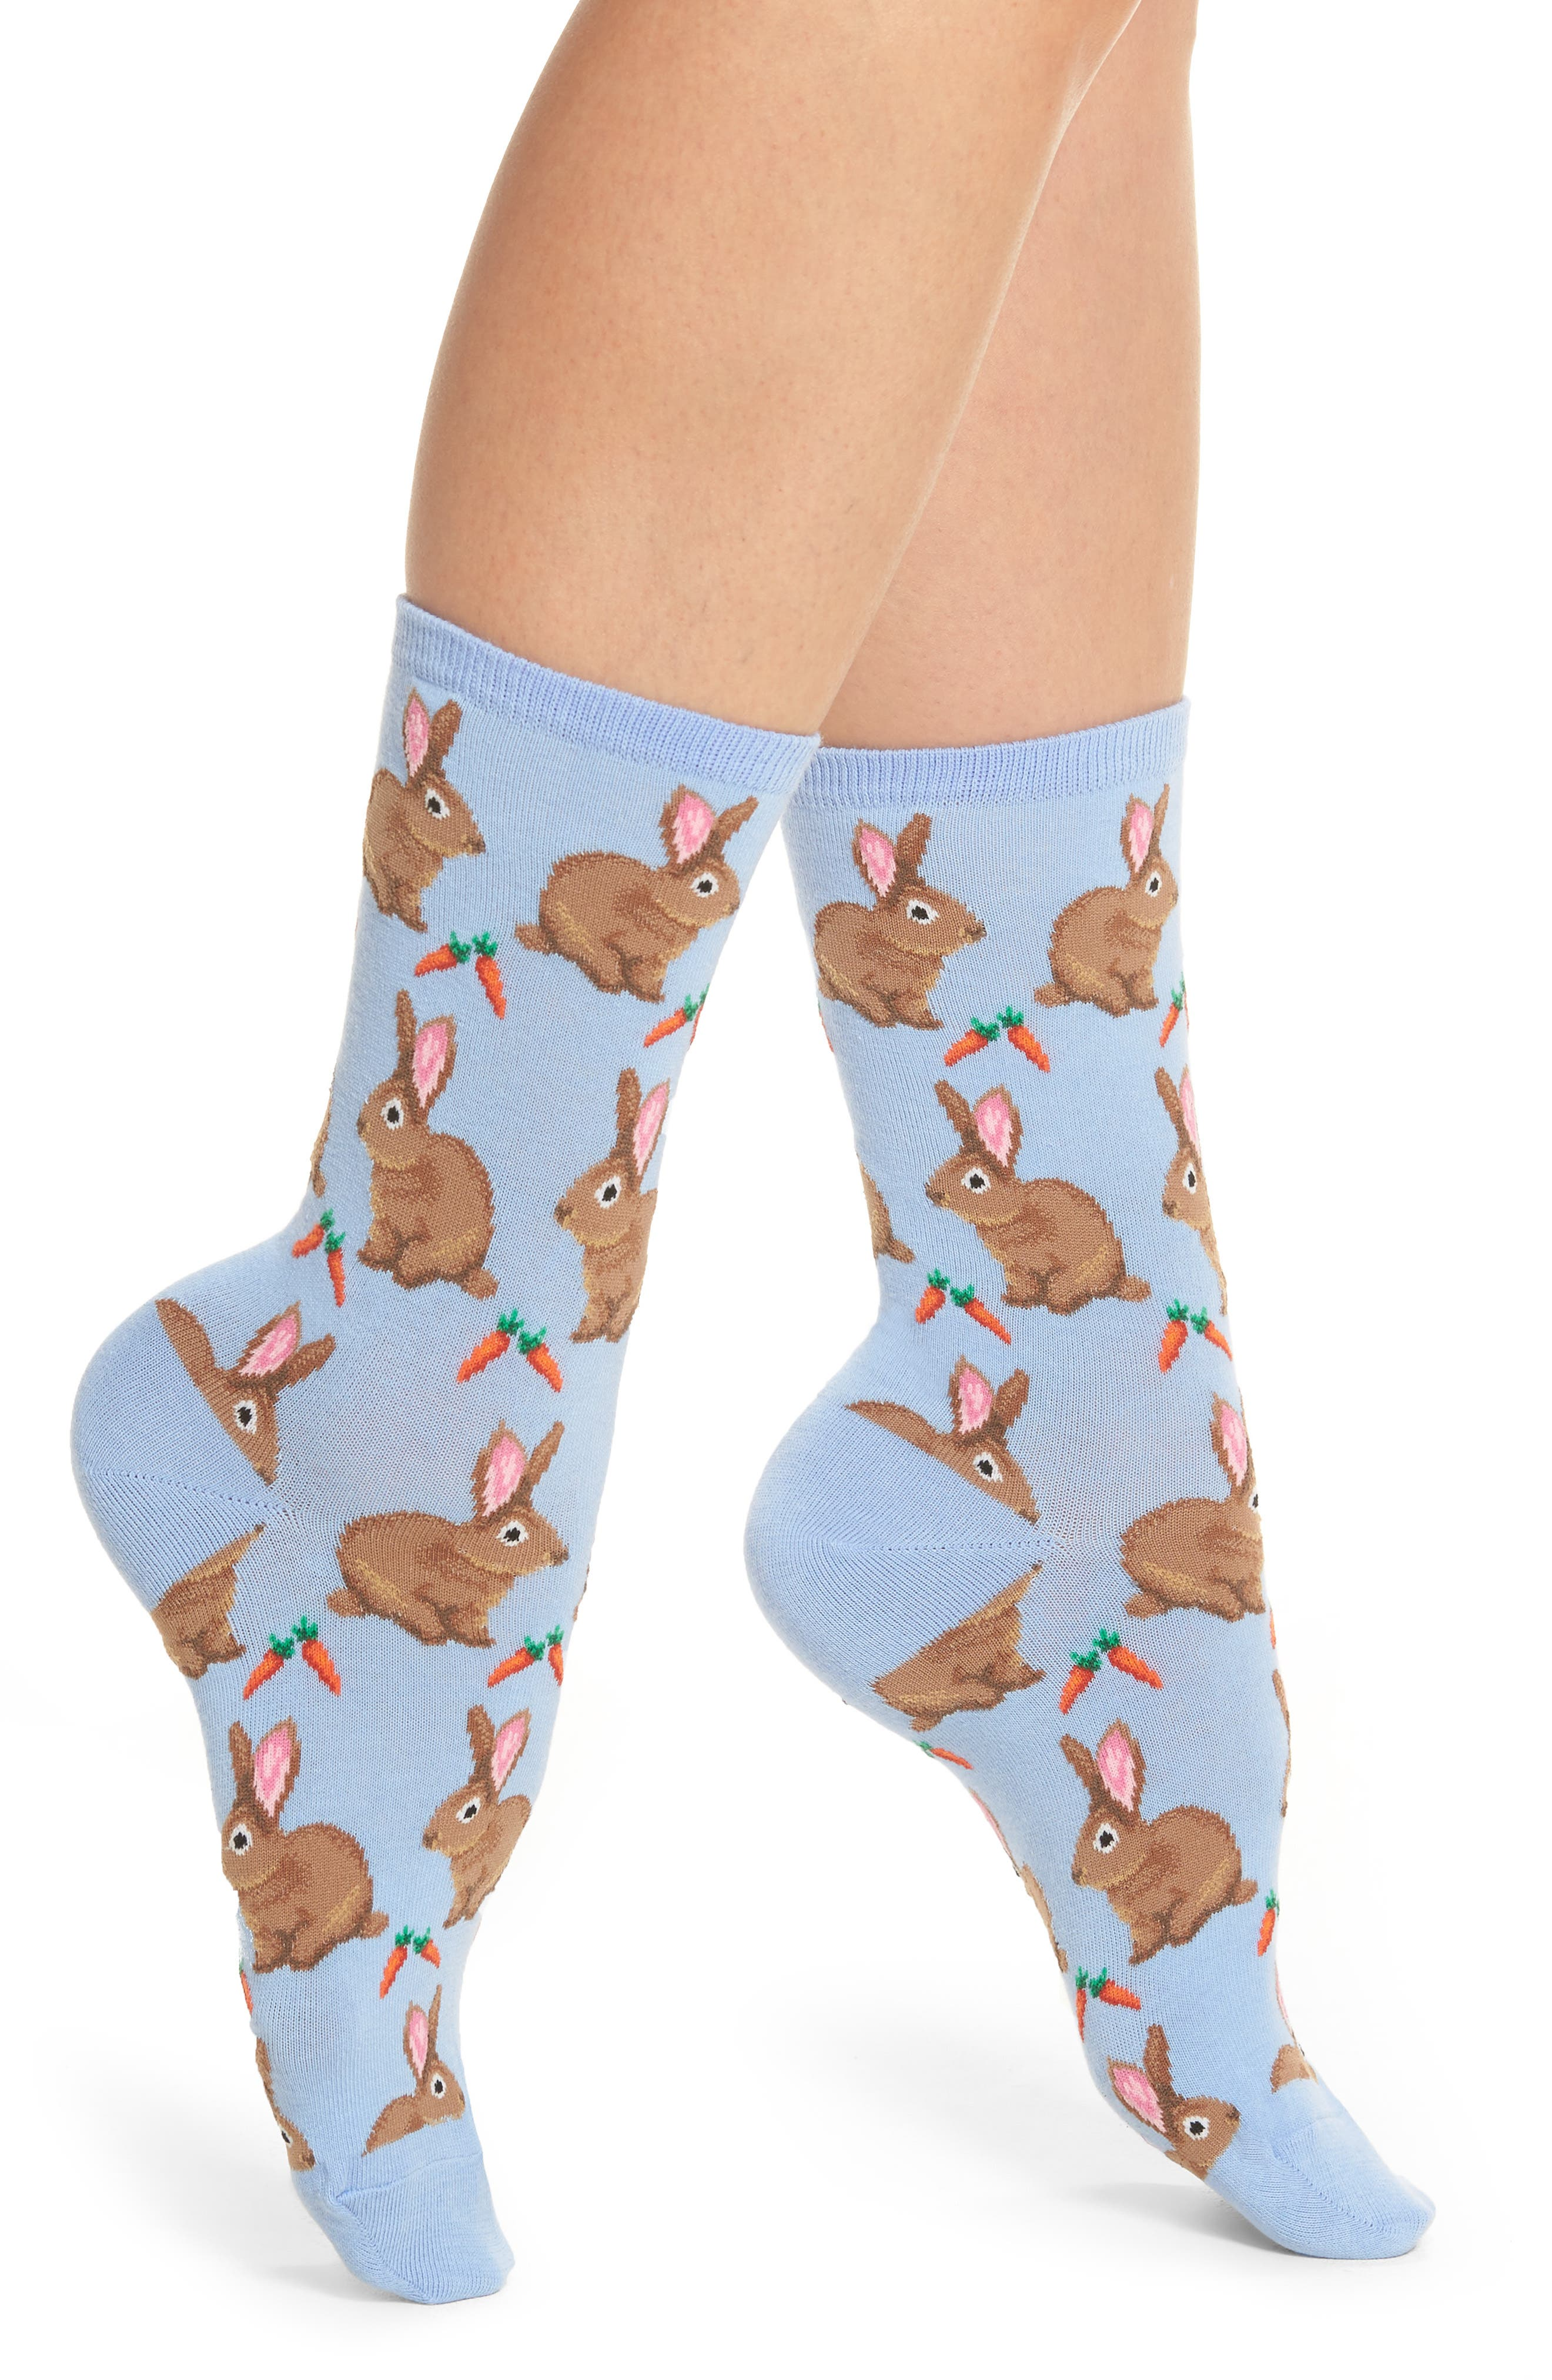 Alternate Image 1 Selected - Hot Sox Bunnies Crew Socks (3 for $15)